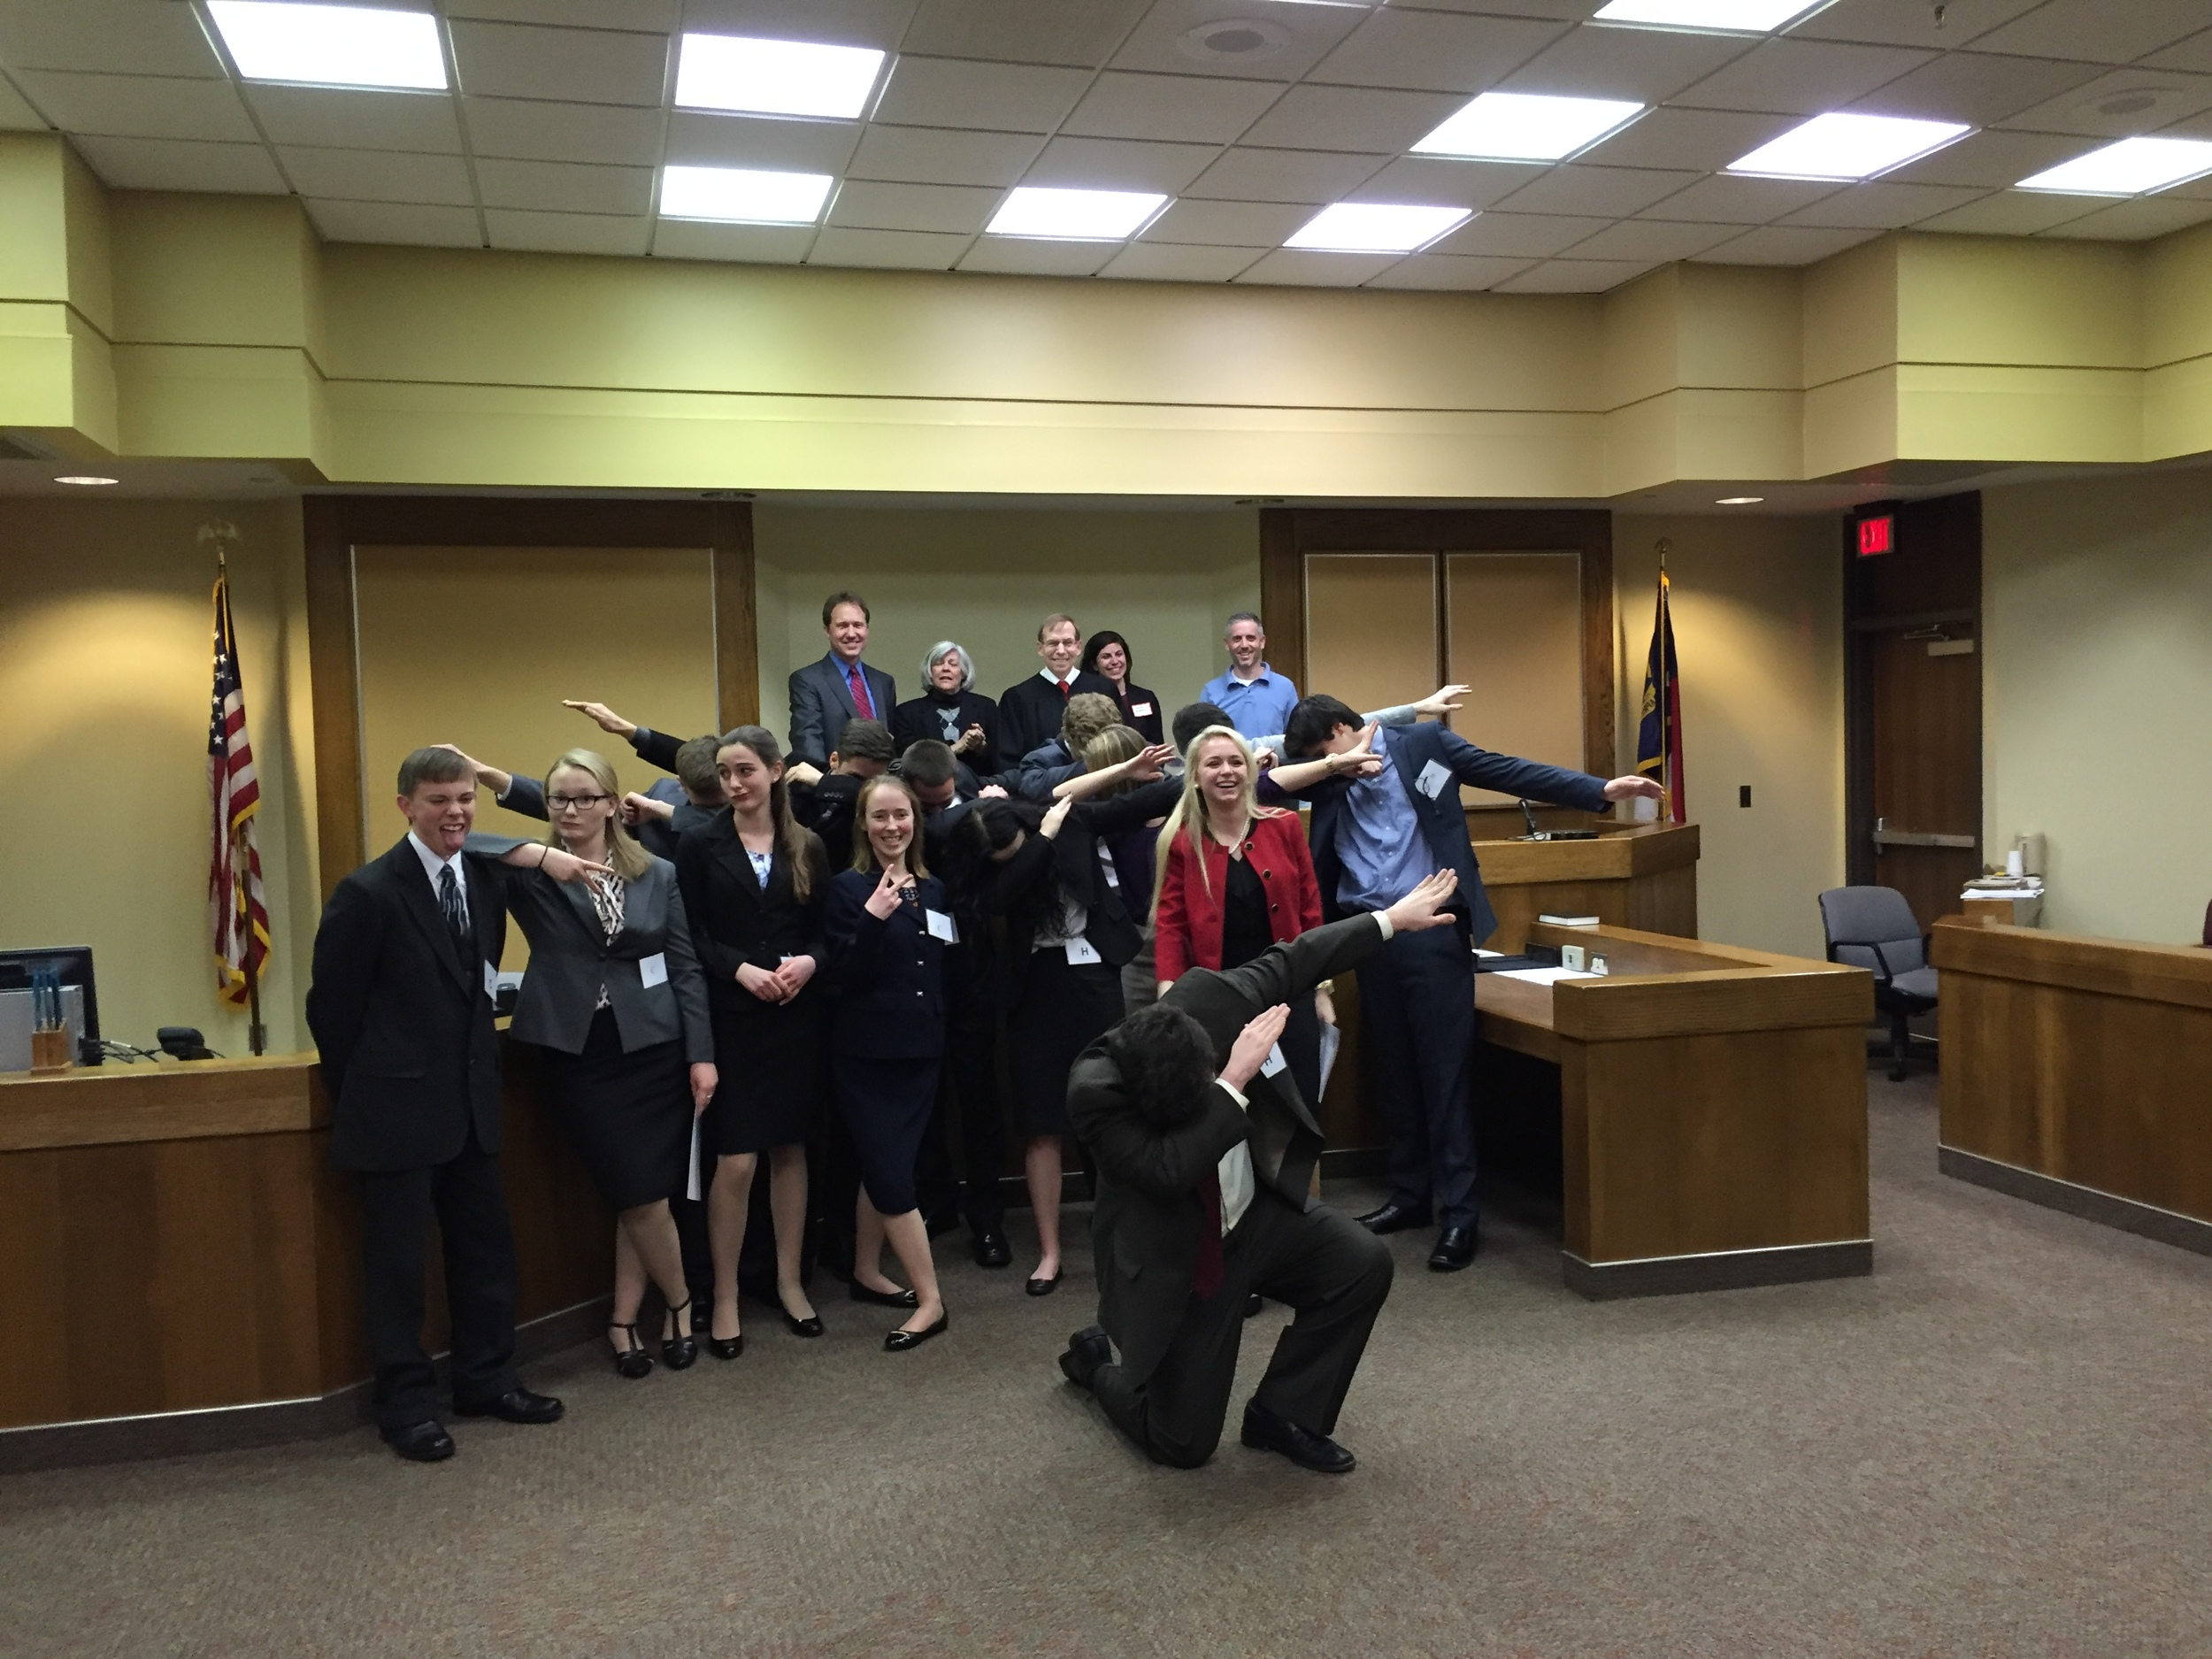 Justice Edmunds with the two finalist teams and scoring jurors at High Point regional round of N.C. Advocates For Justice High School Mock Trial Competition, February 2016.